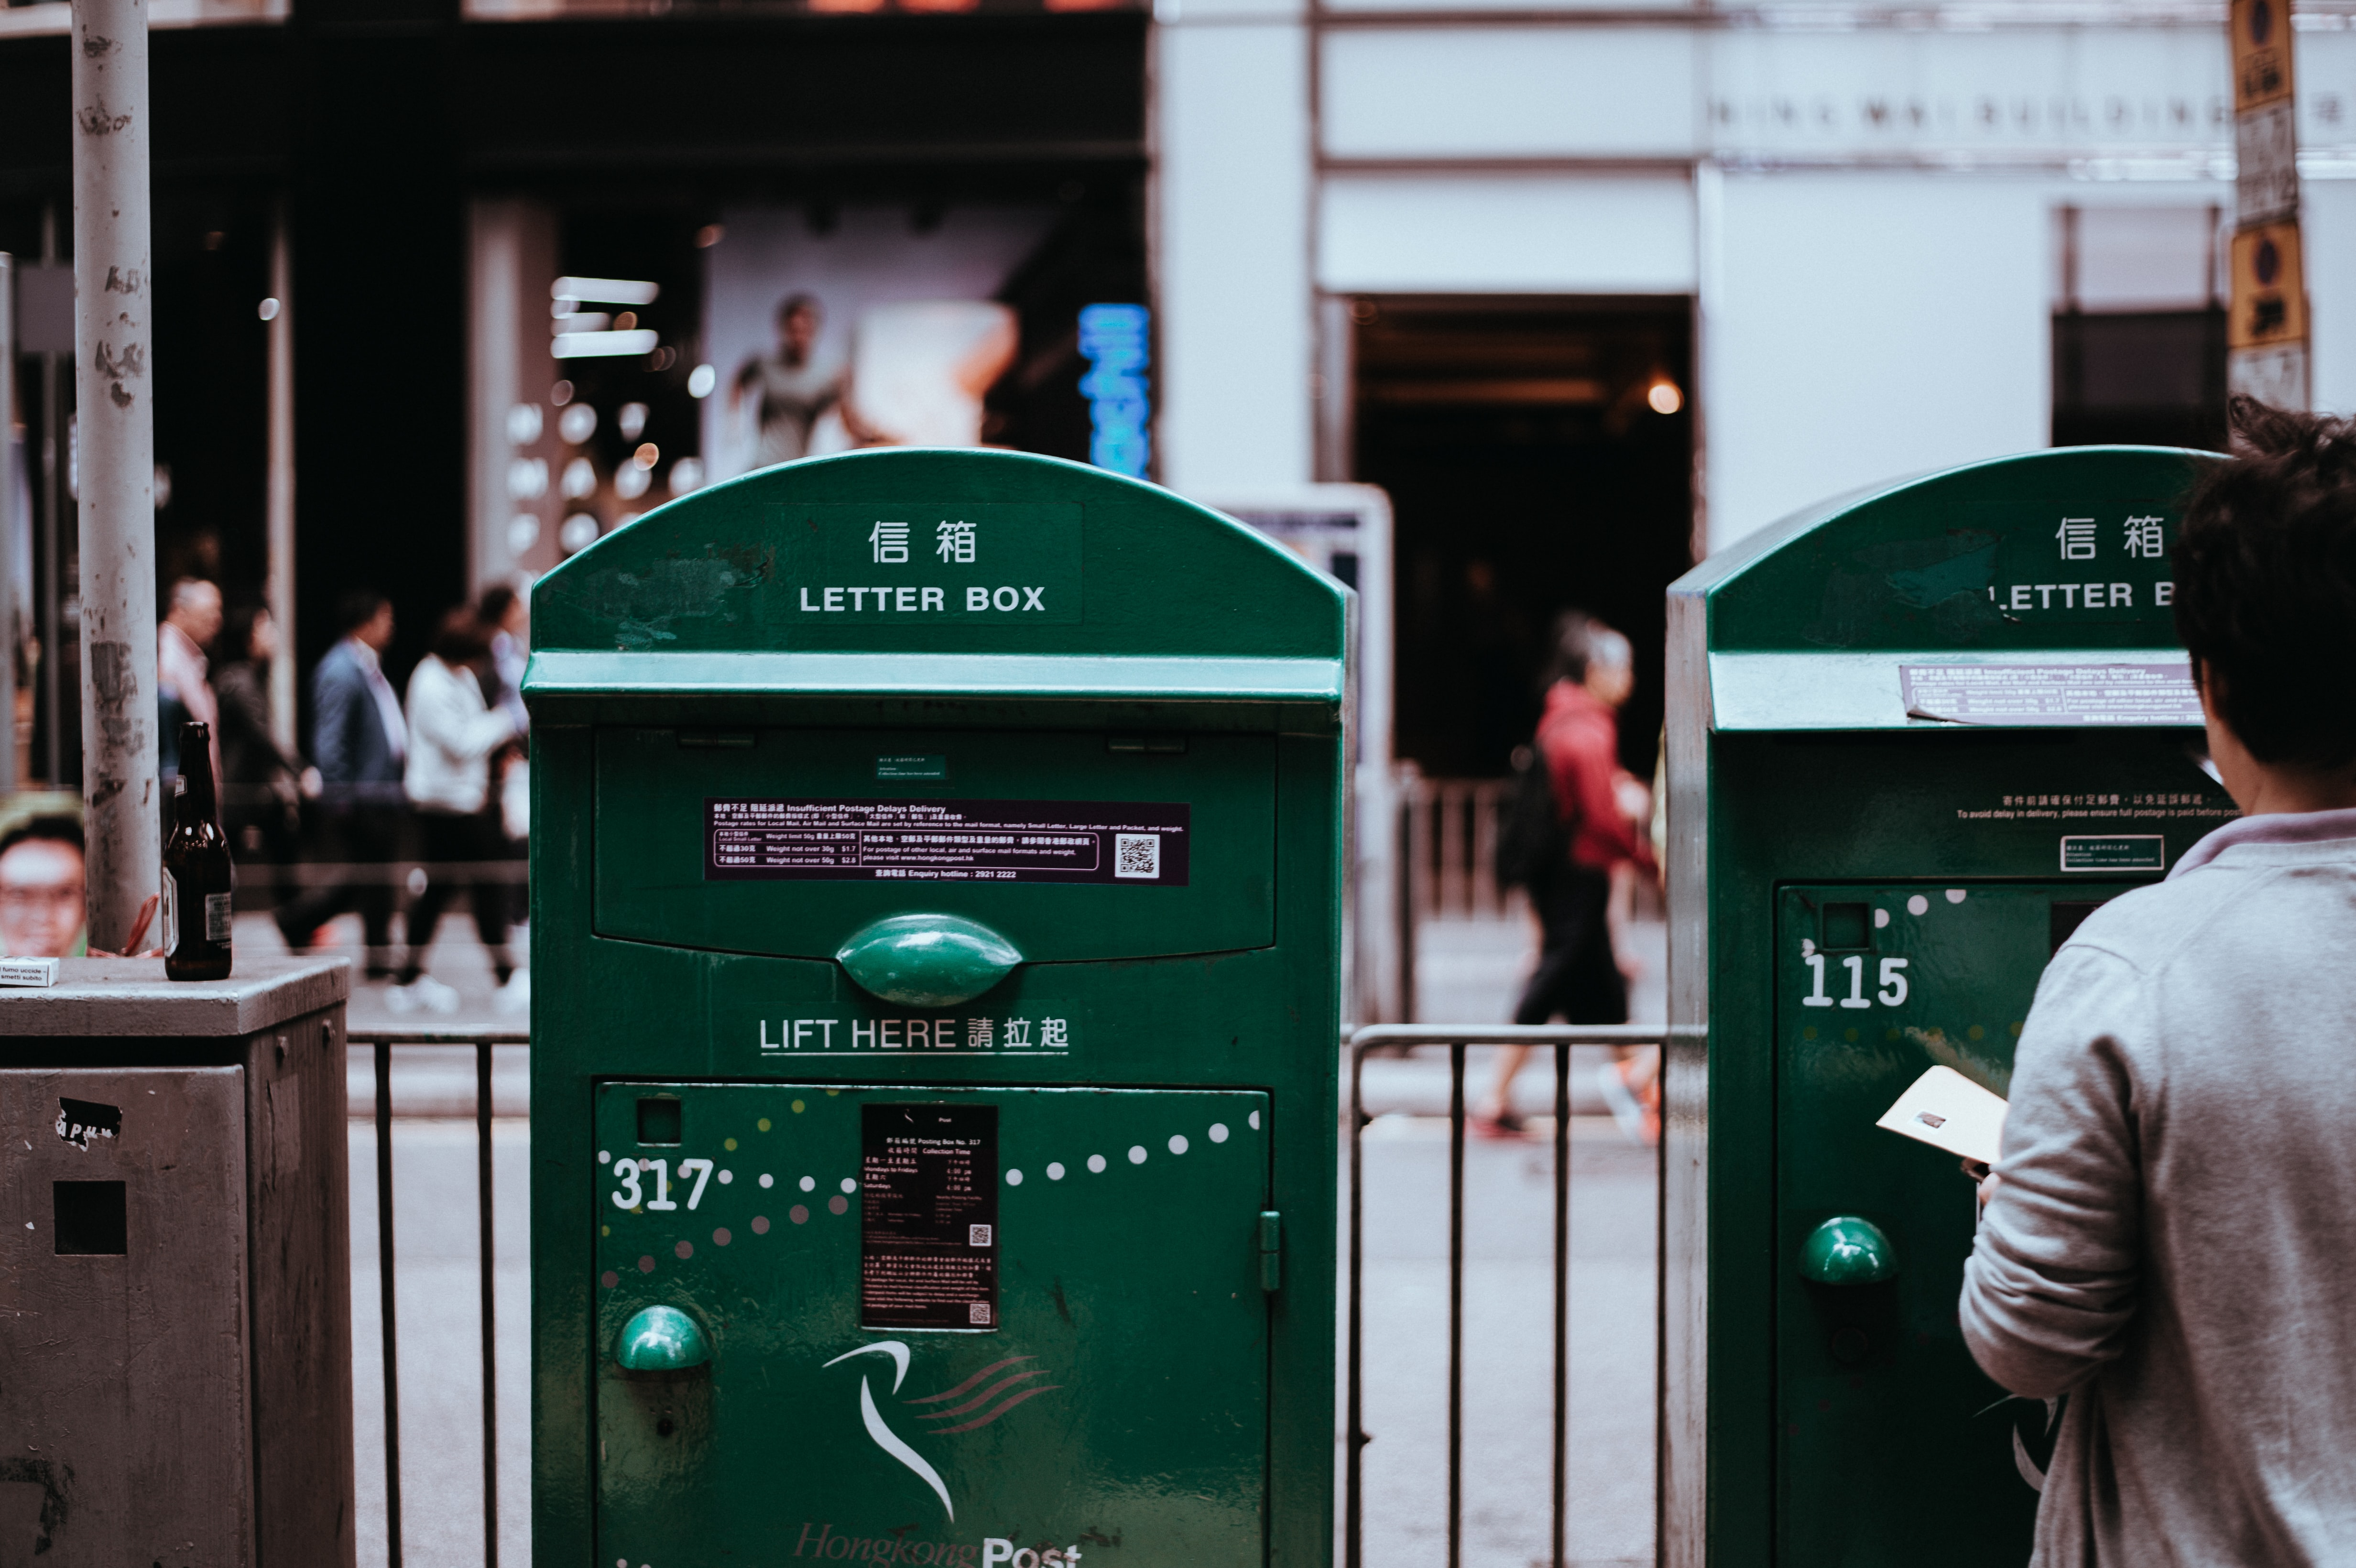 Two green letter boxes in urban area of Hong Kong